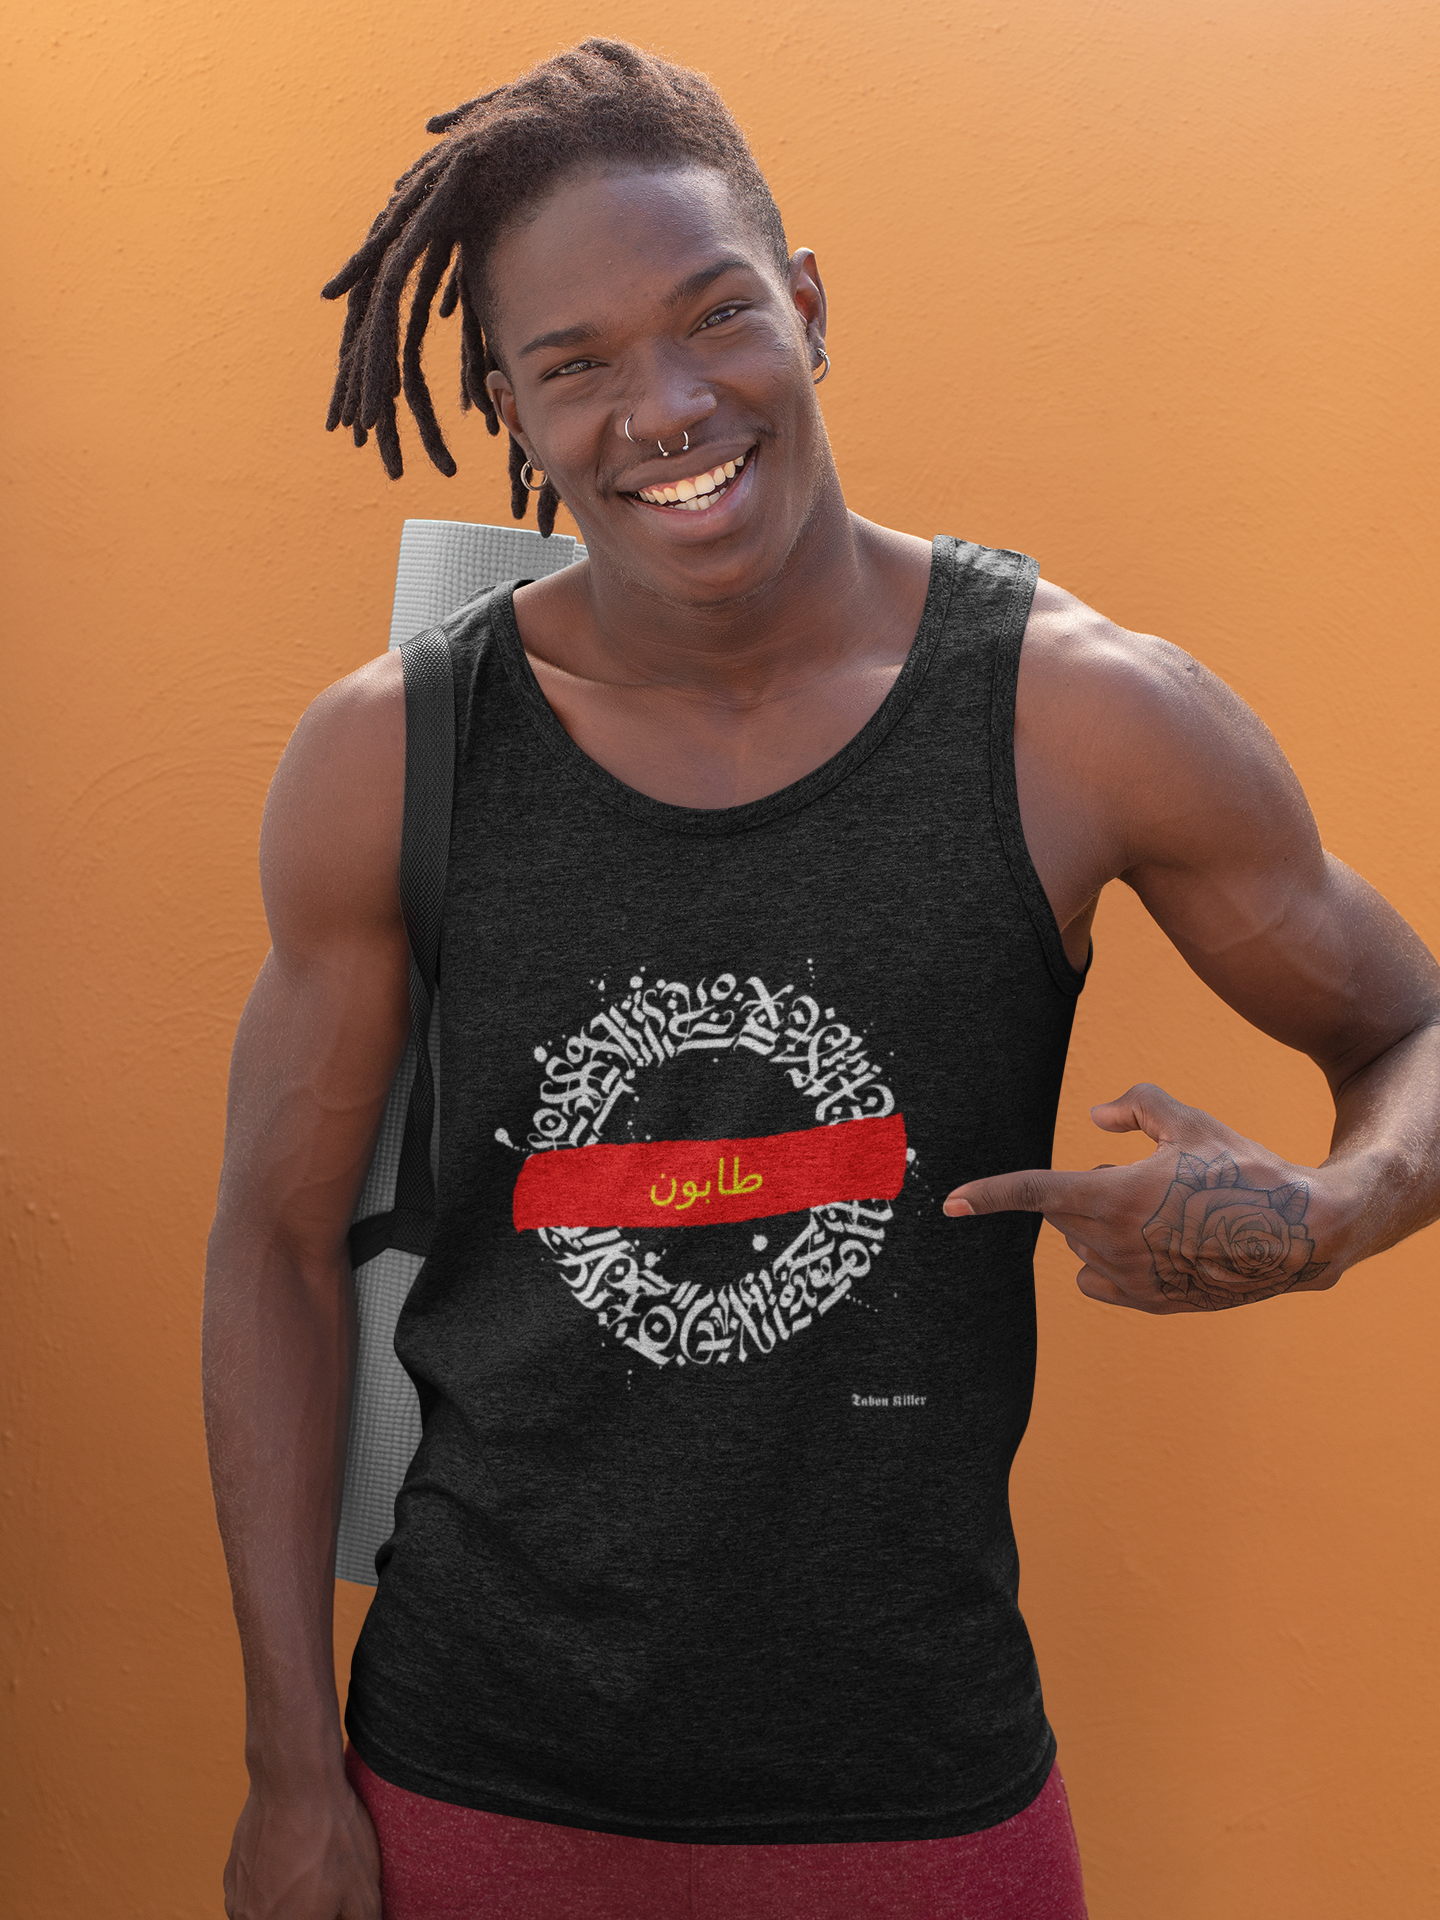 tank-top-mockup-of-a-happy-man-with-a-ha